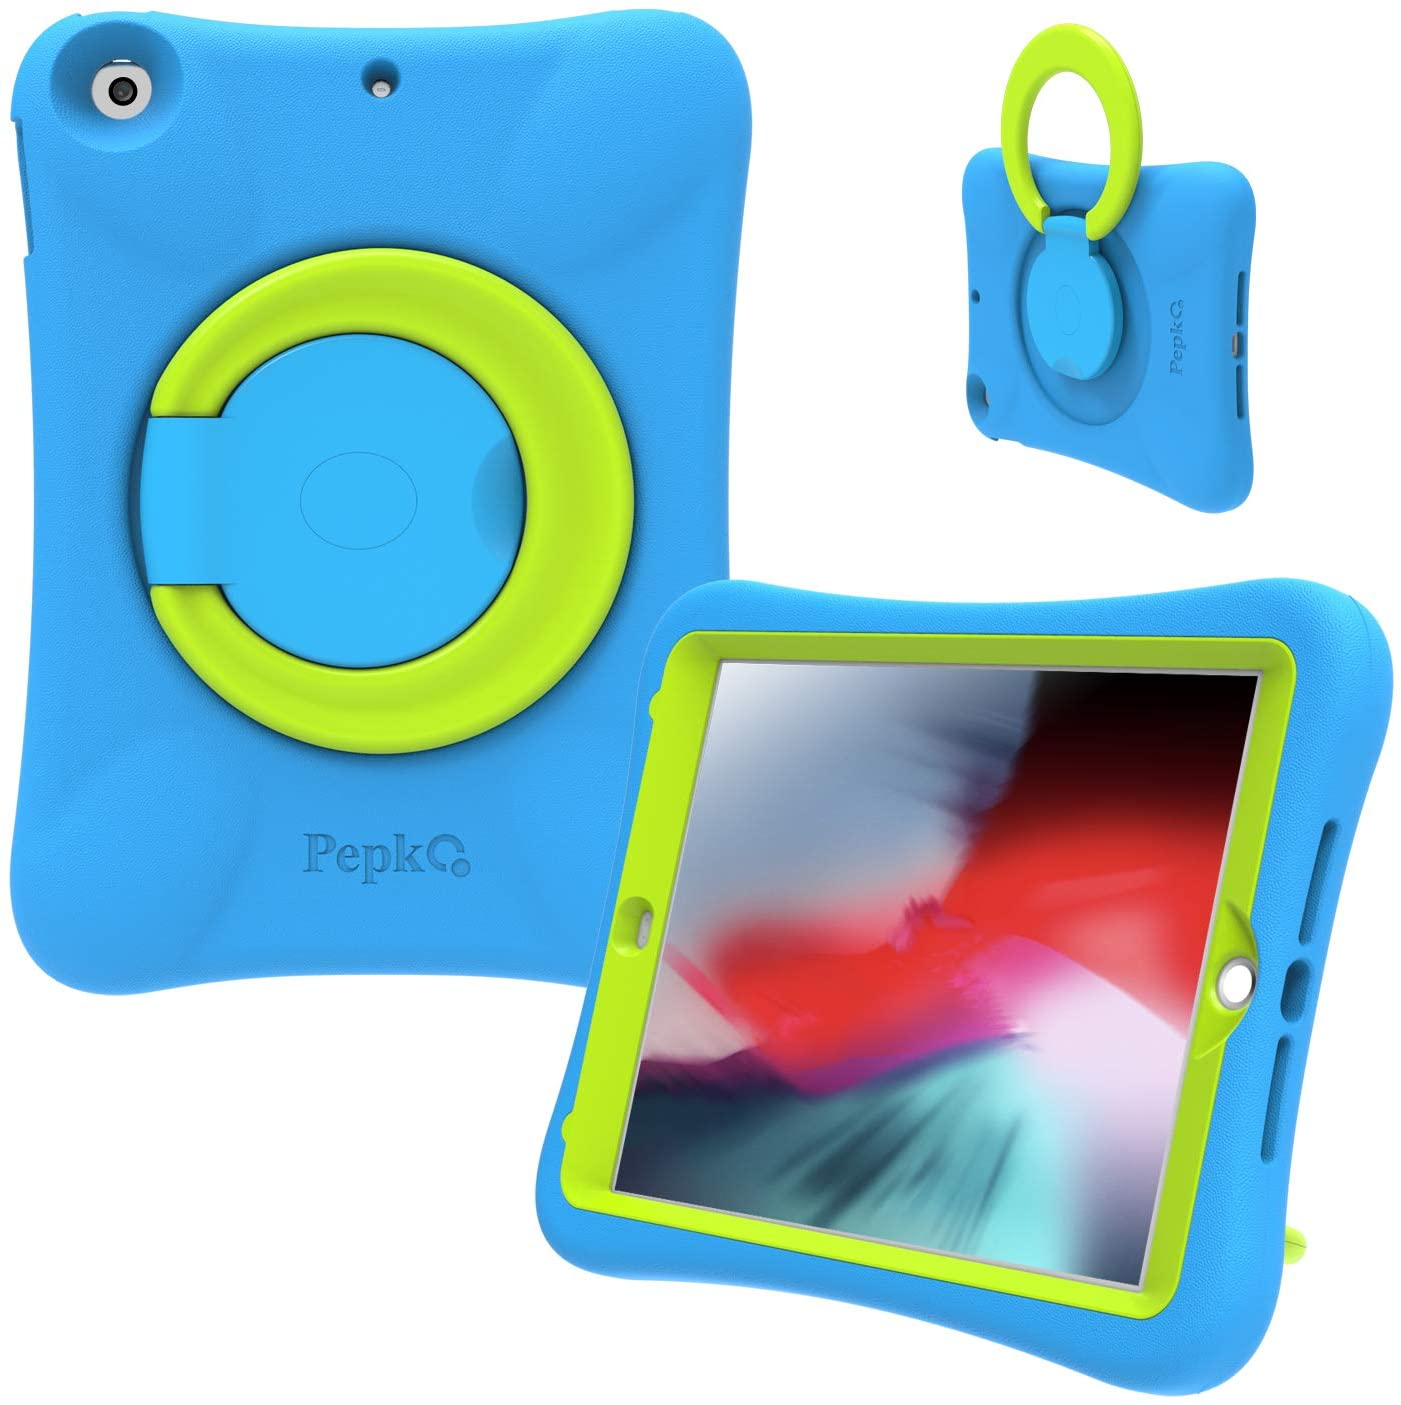 PEPKOO iPad Case For Kids.